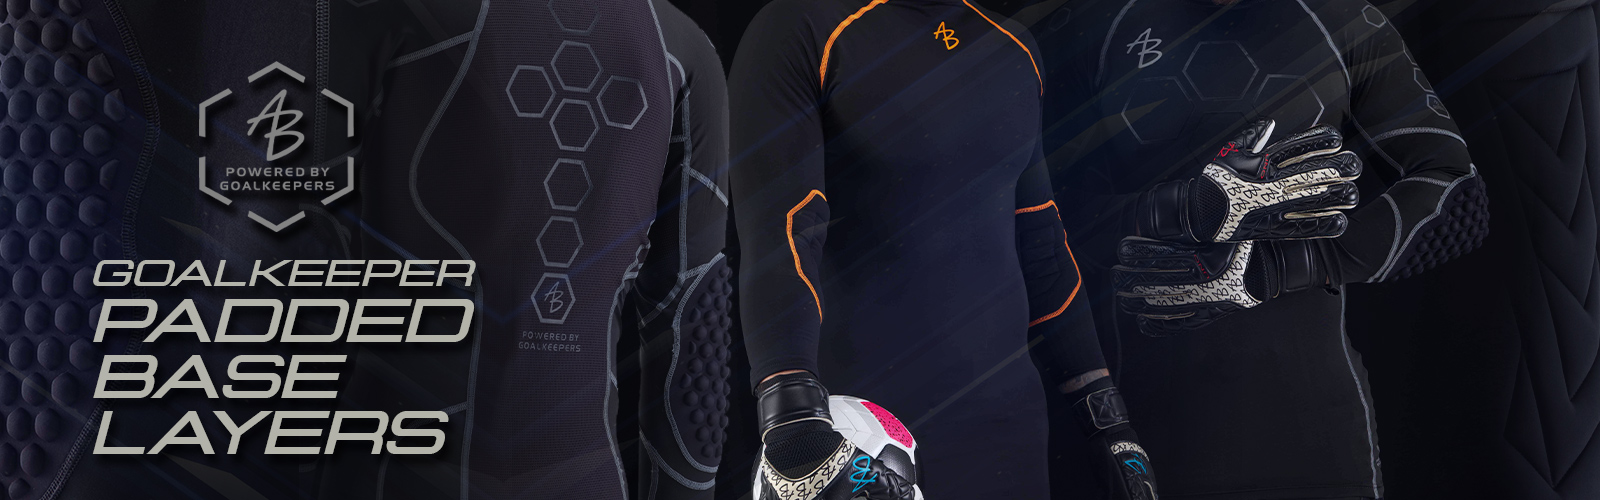 AB1GK Base Layers